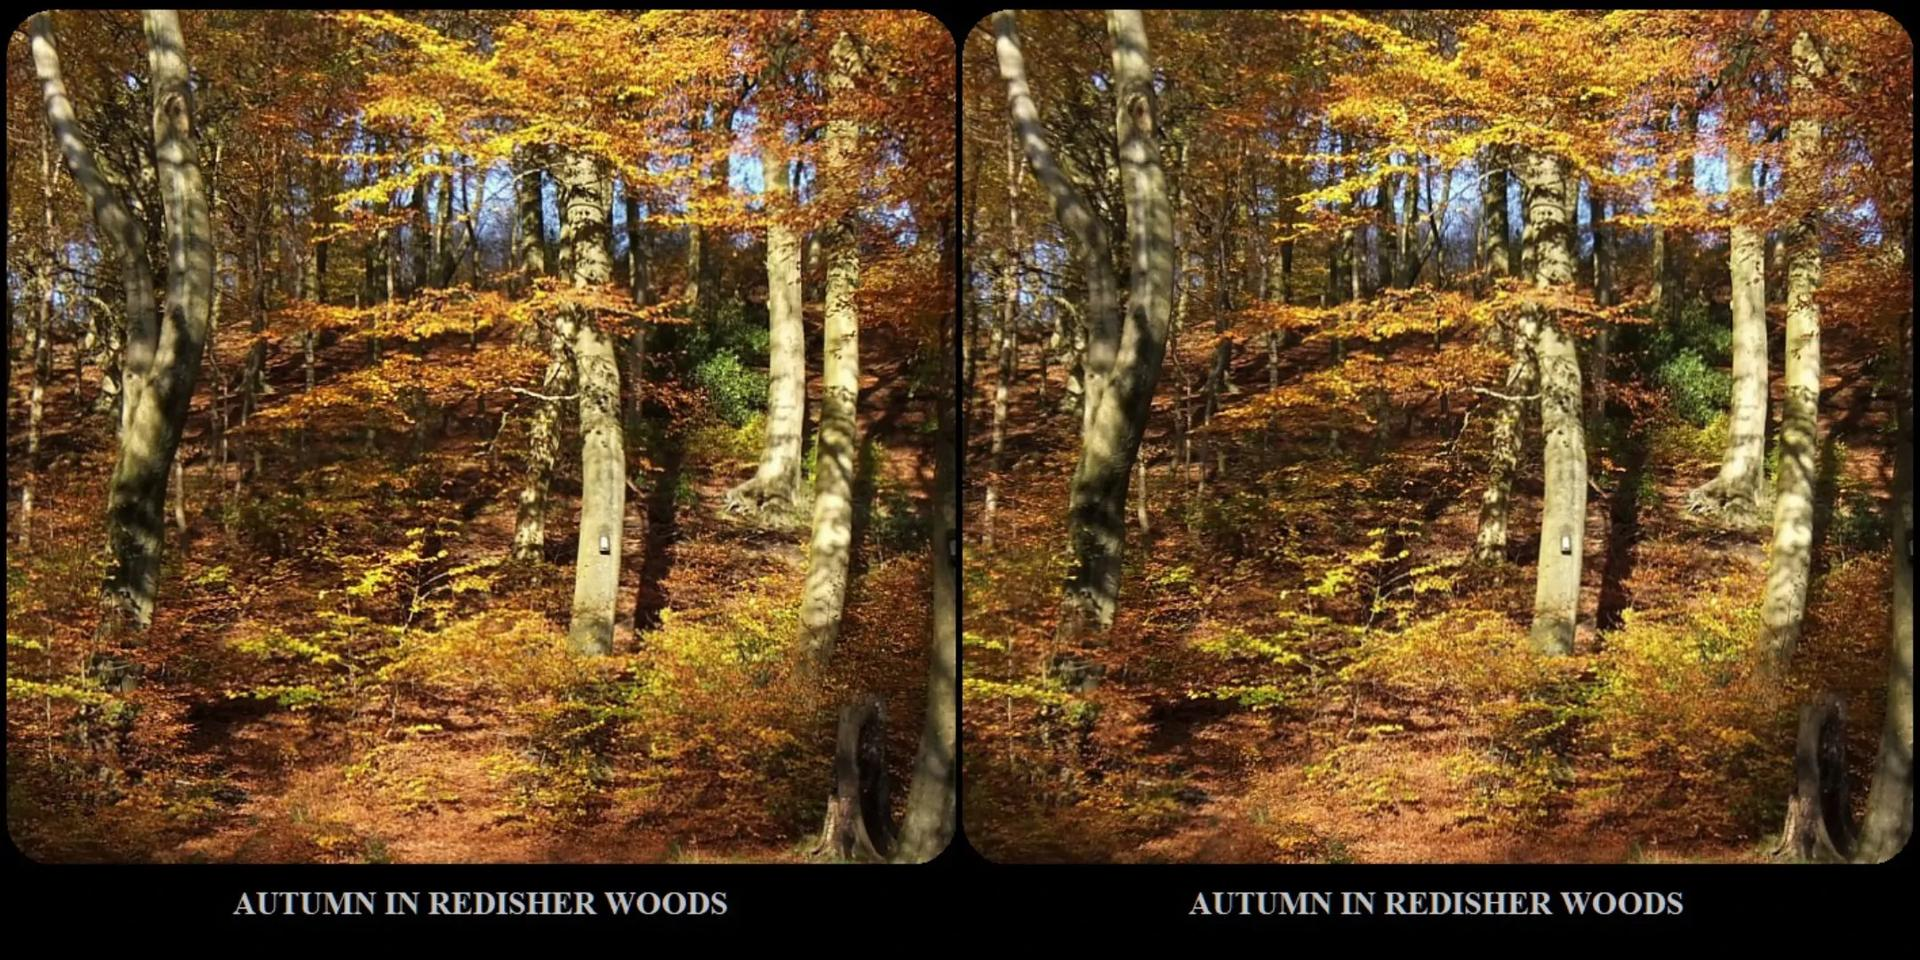 AUTUMN IN REDISHER WOODS